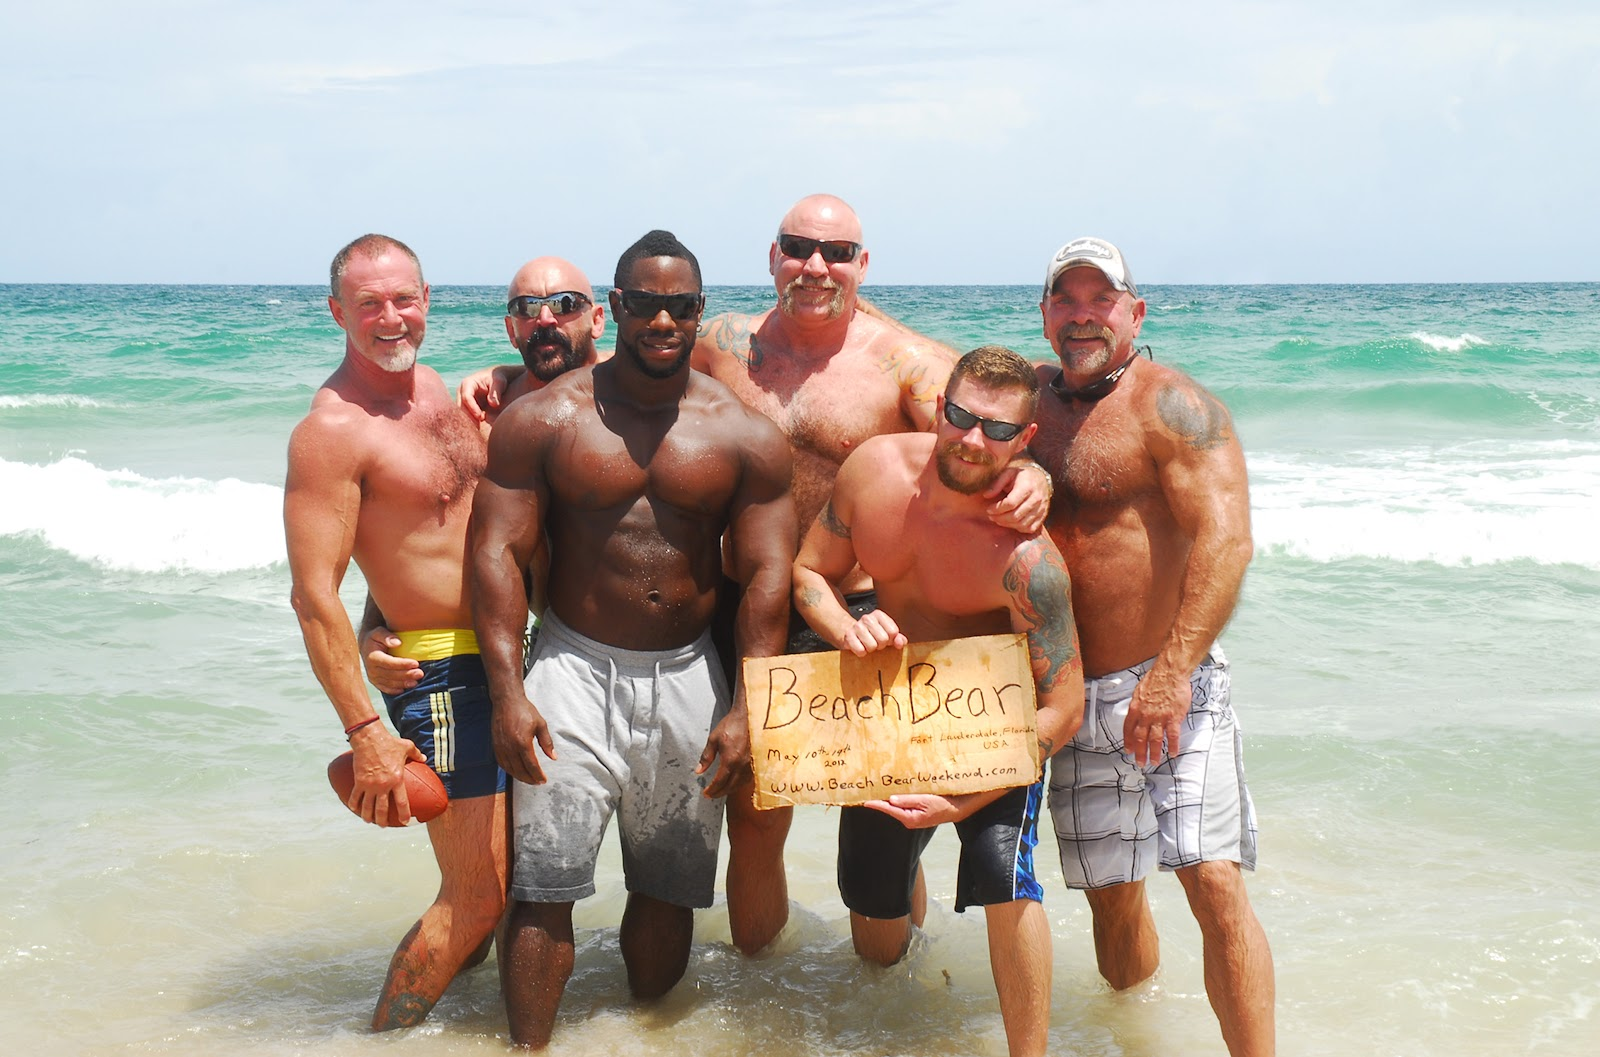 These Guys Want To Show You A Good Time Beach Bear Weekend Coming Fort Lauderdale